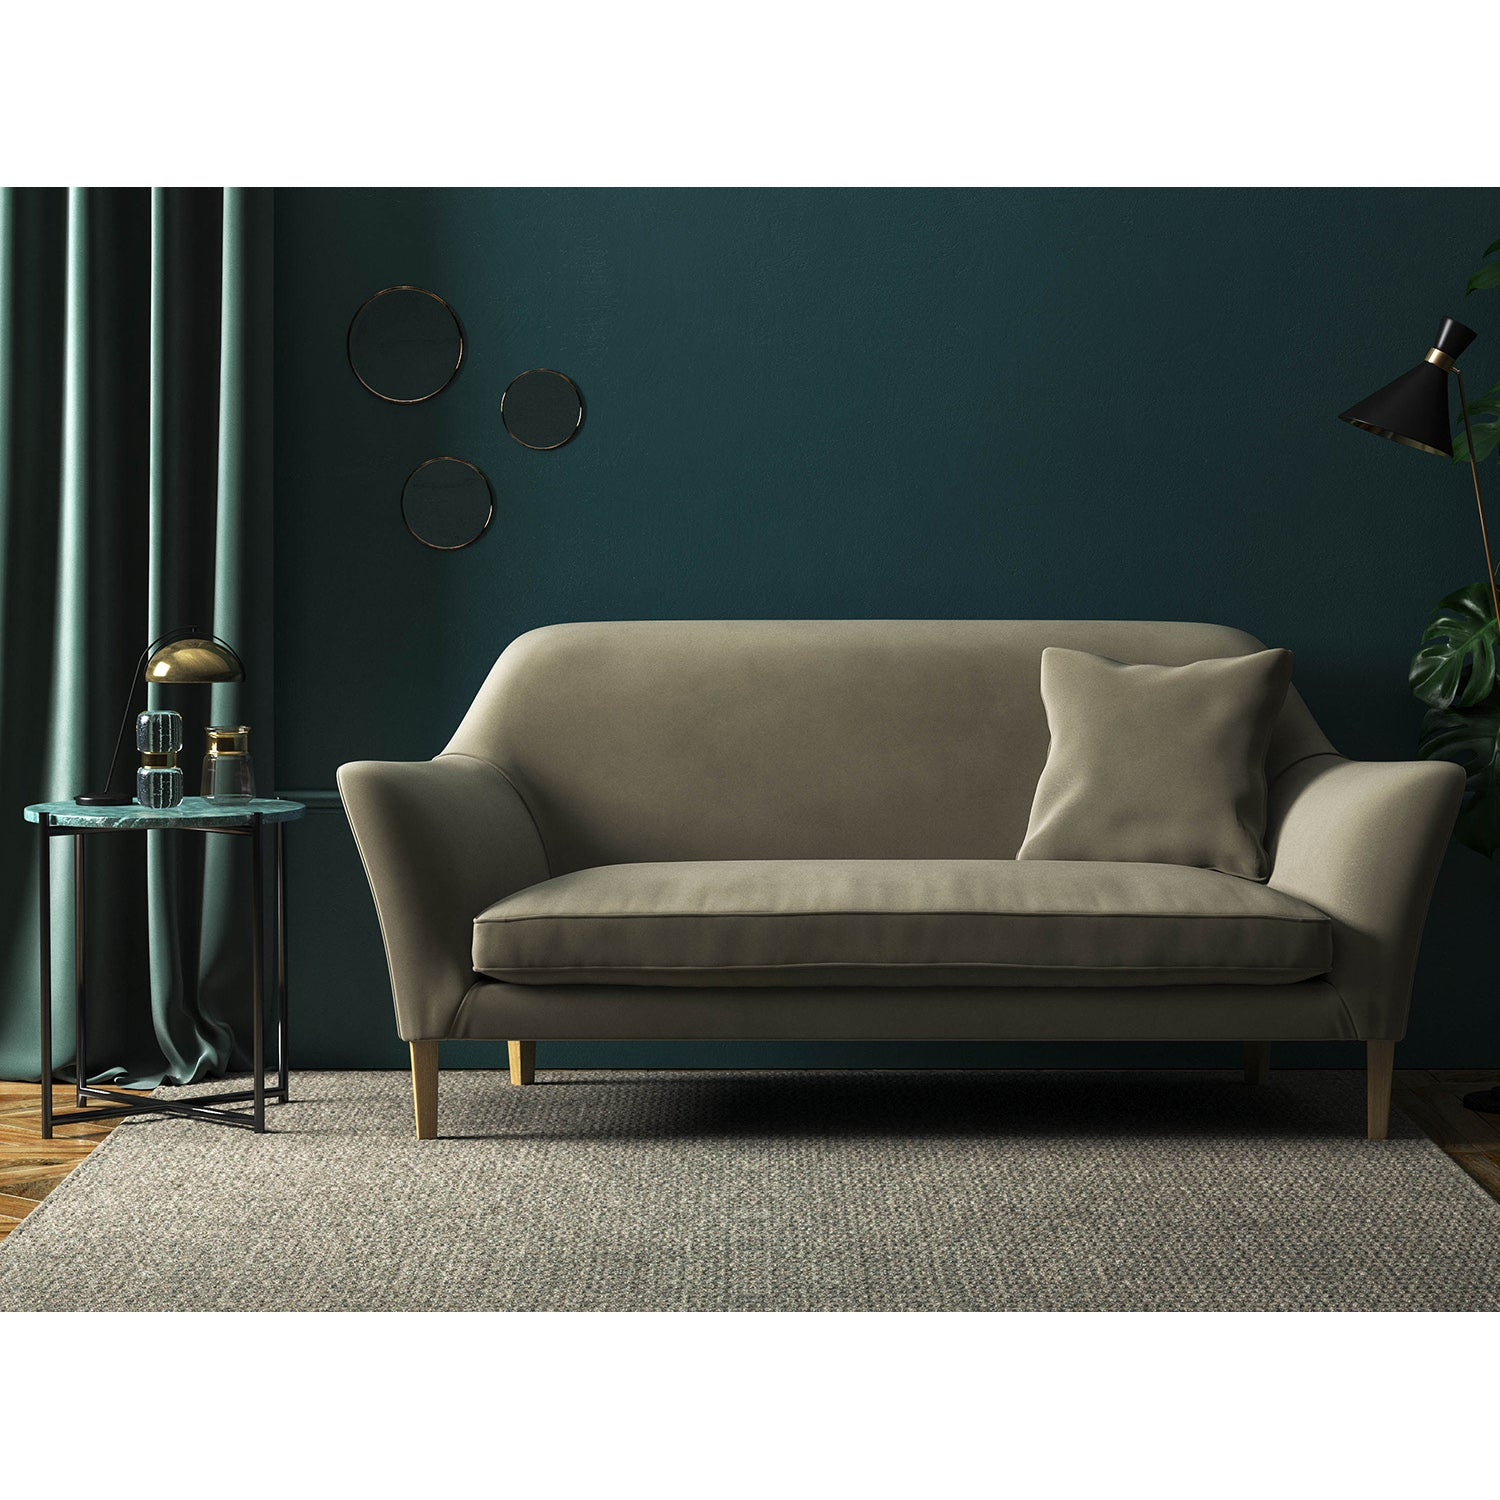 Dark neutral velvet sofa with a stain resistant finish